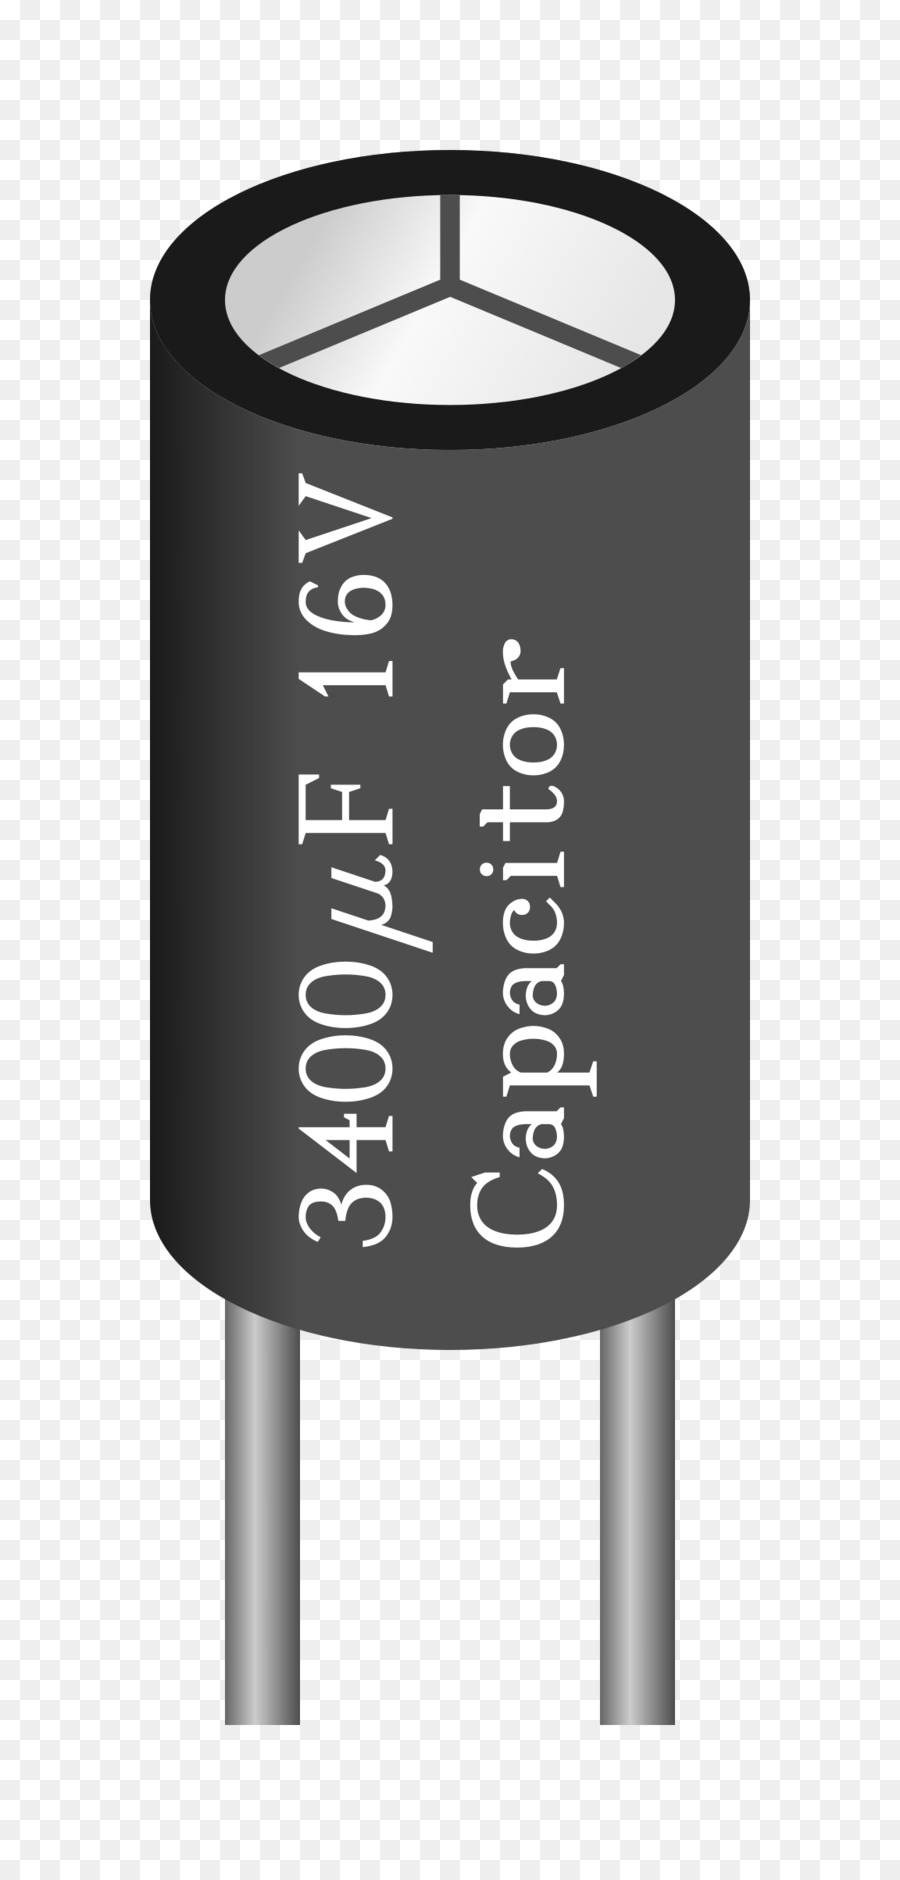 capacitor png clipart Electrolytic capacitor Clip art